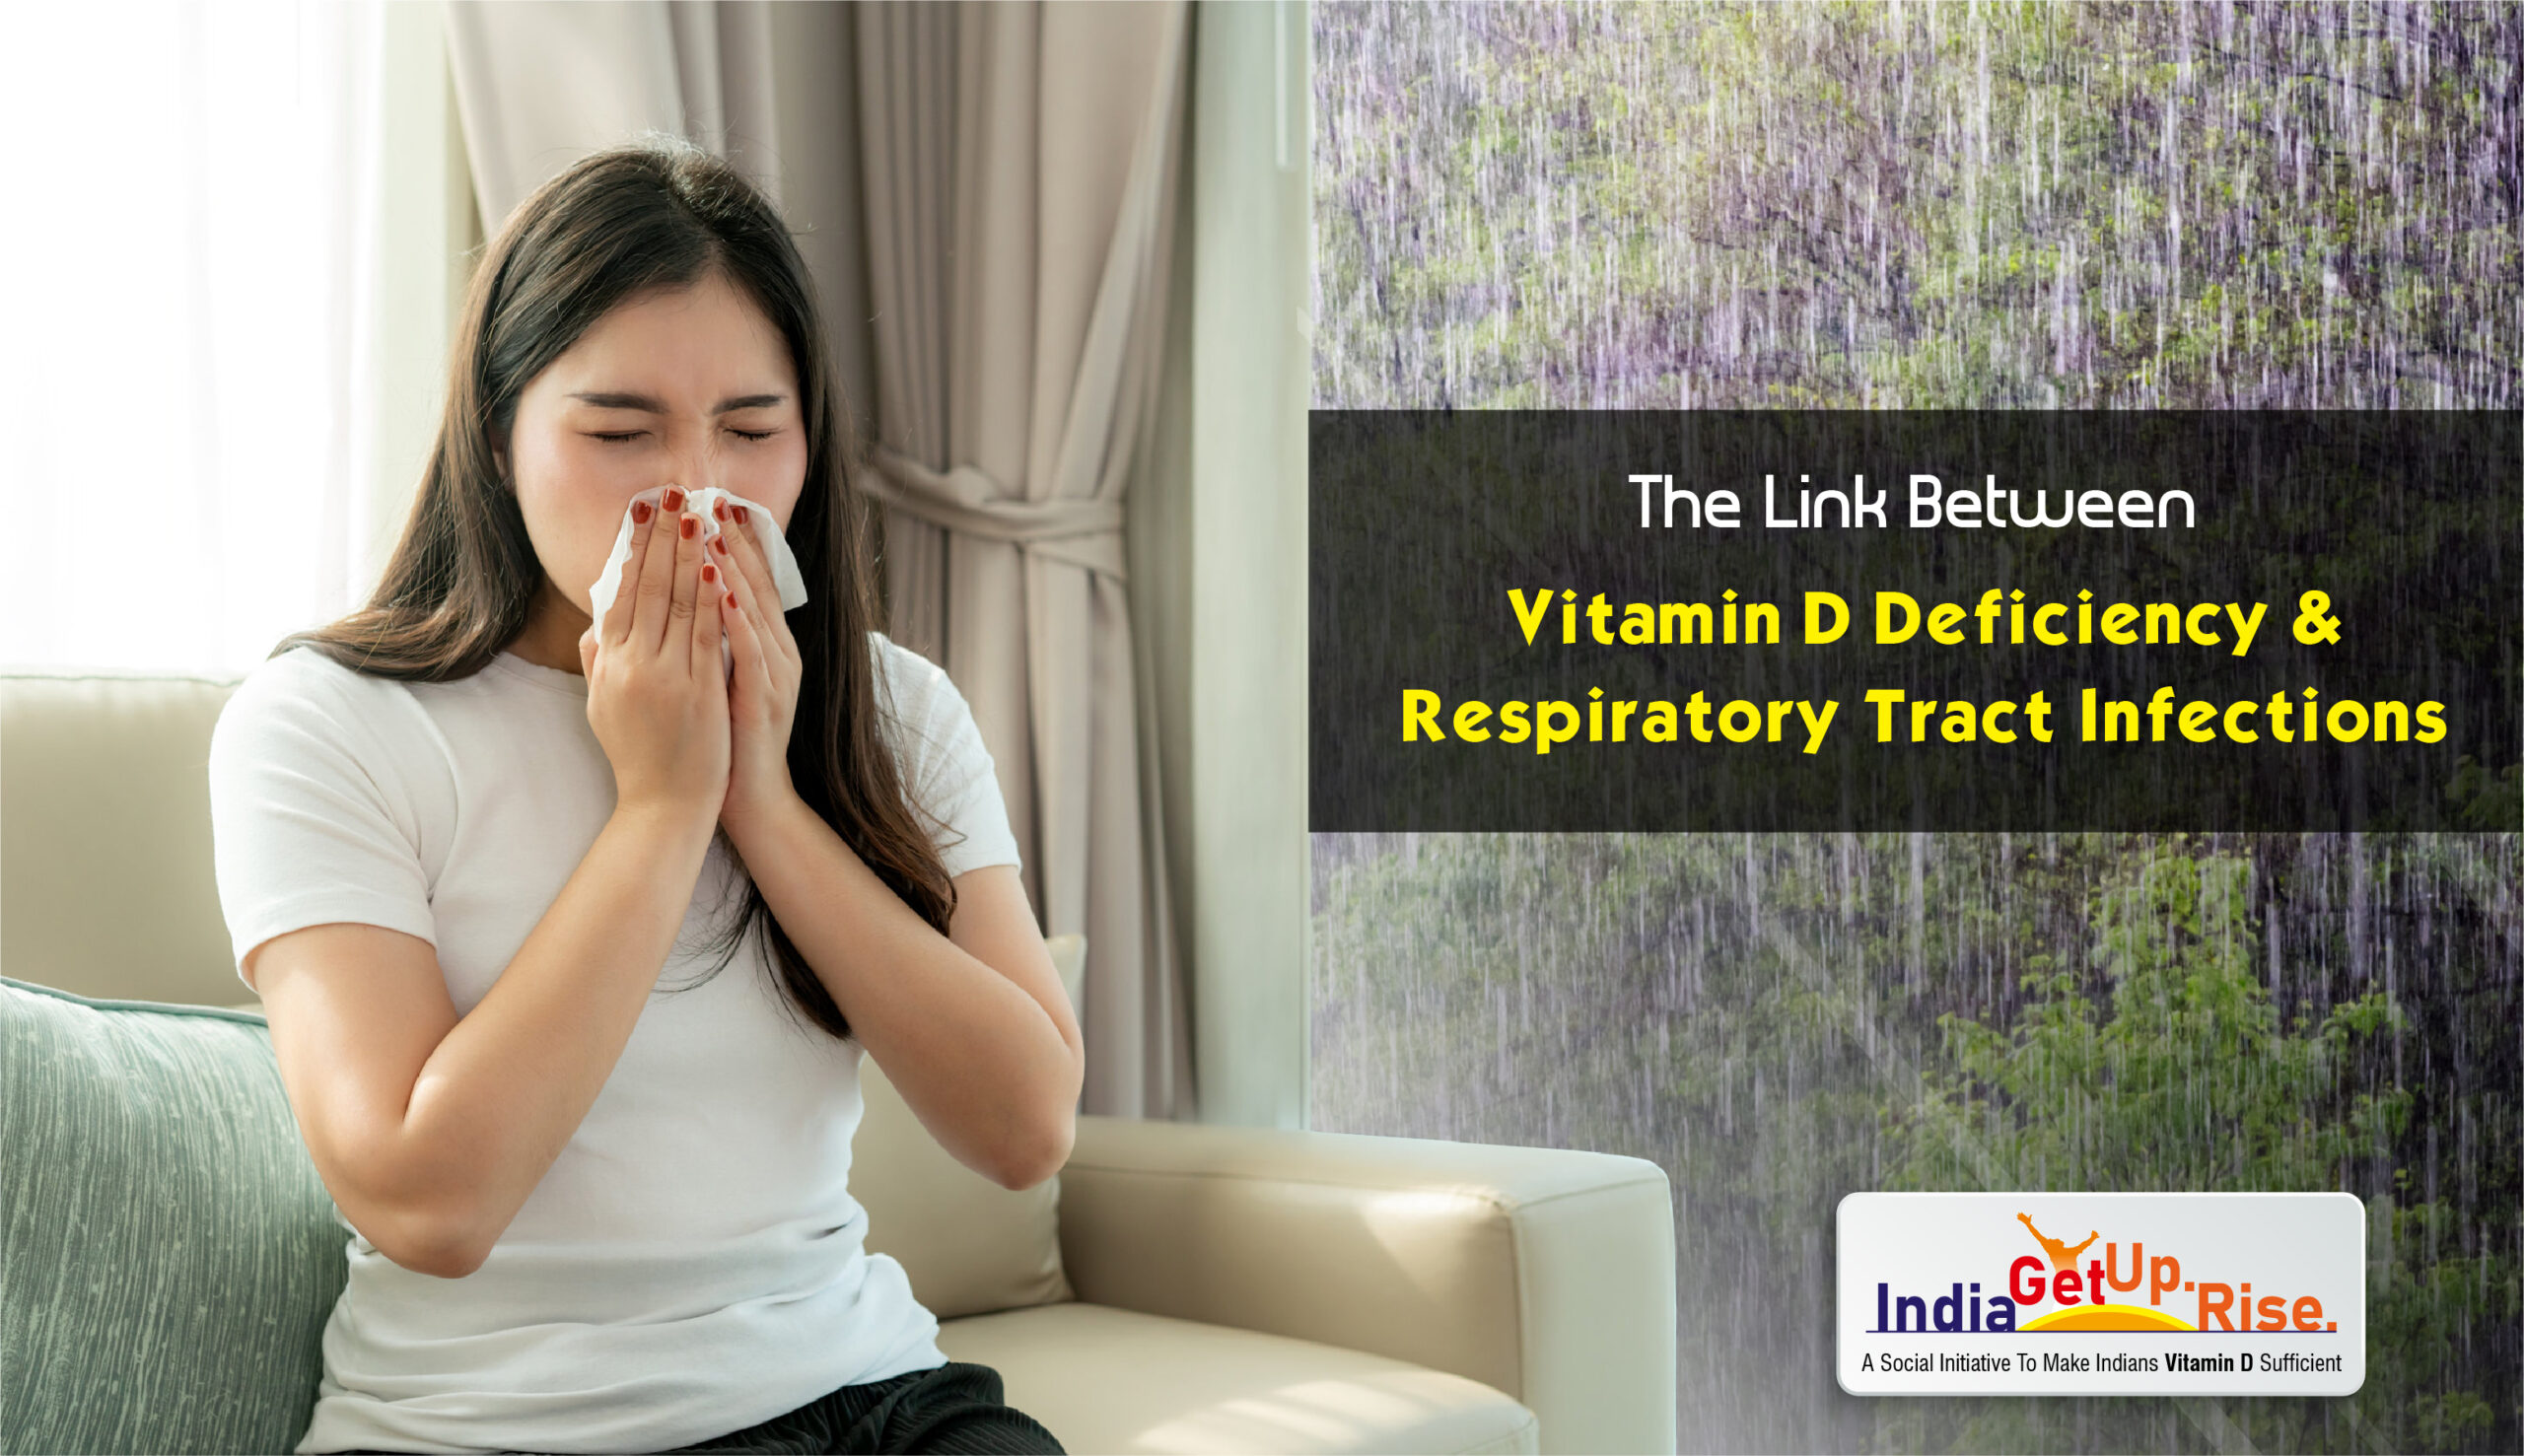 Vitamin D Deficiency and Respiratory Tract Infections